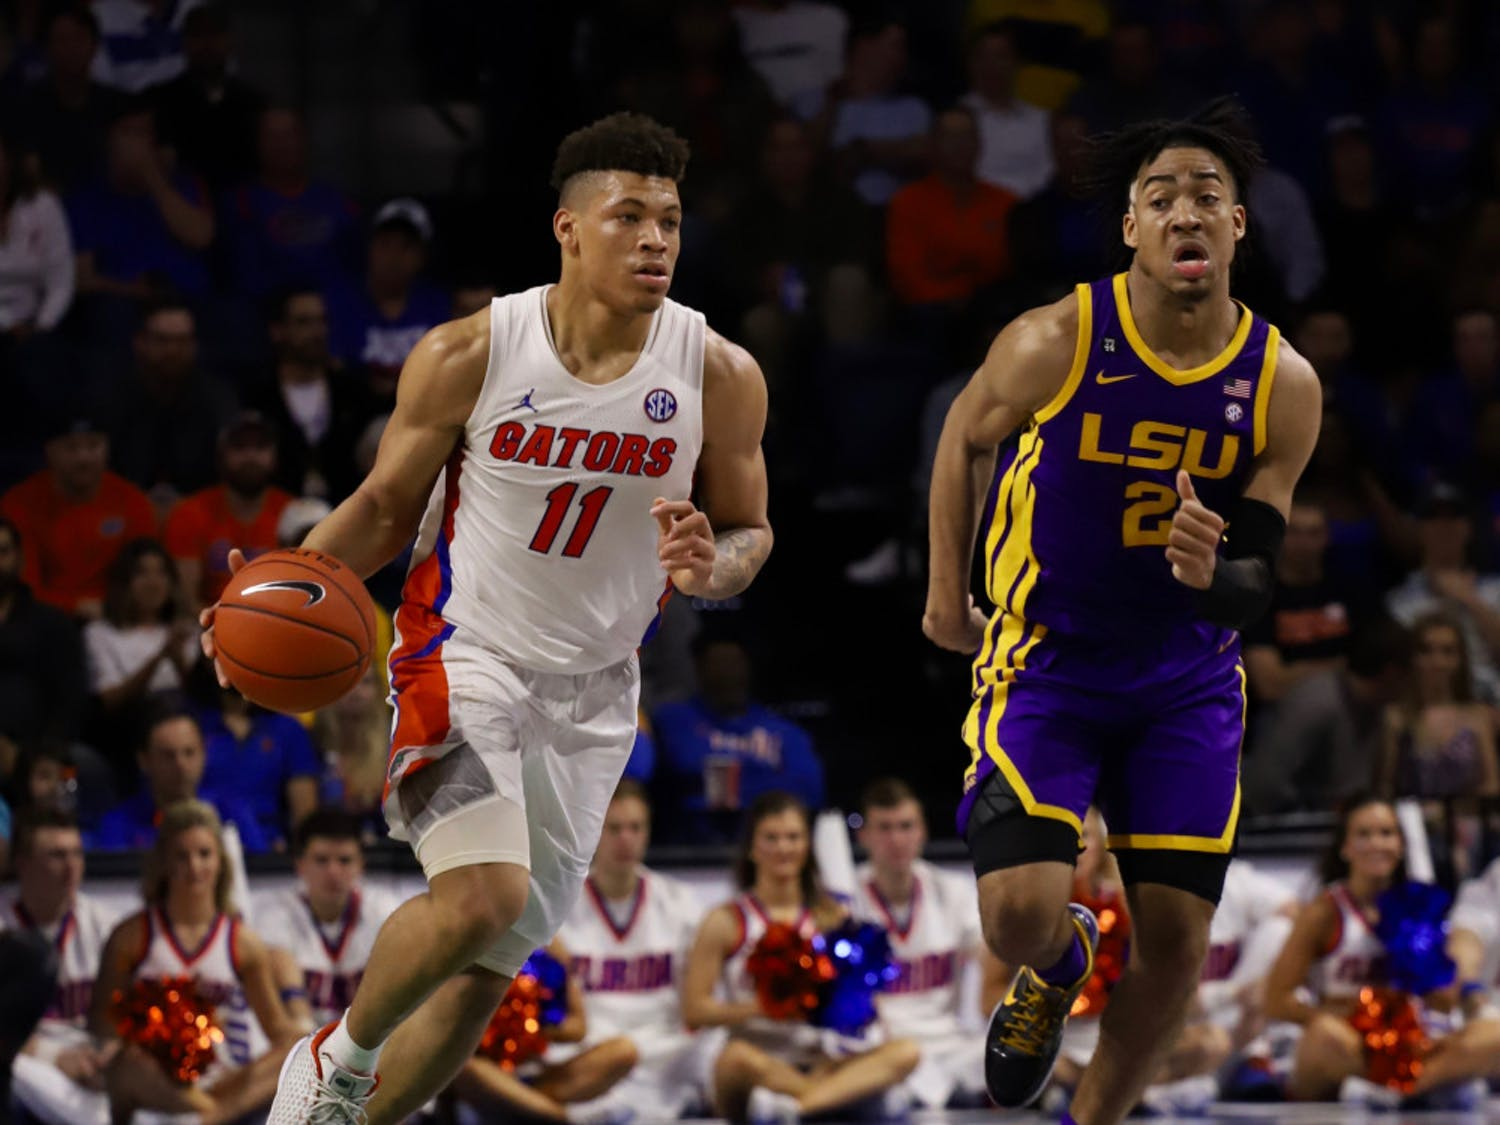 The SEC released its men's basketball conference schedule Friday. The Gators will play LSU at home and away in the 2020-21 season.